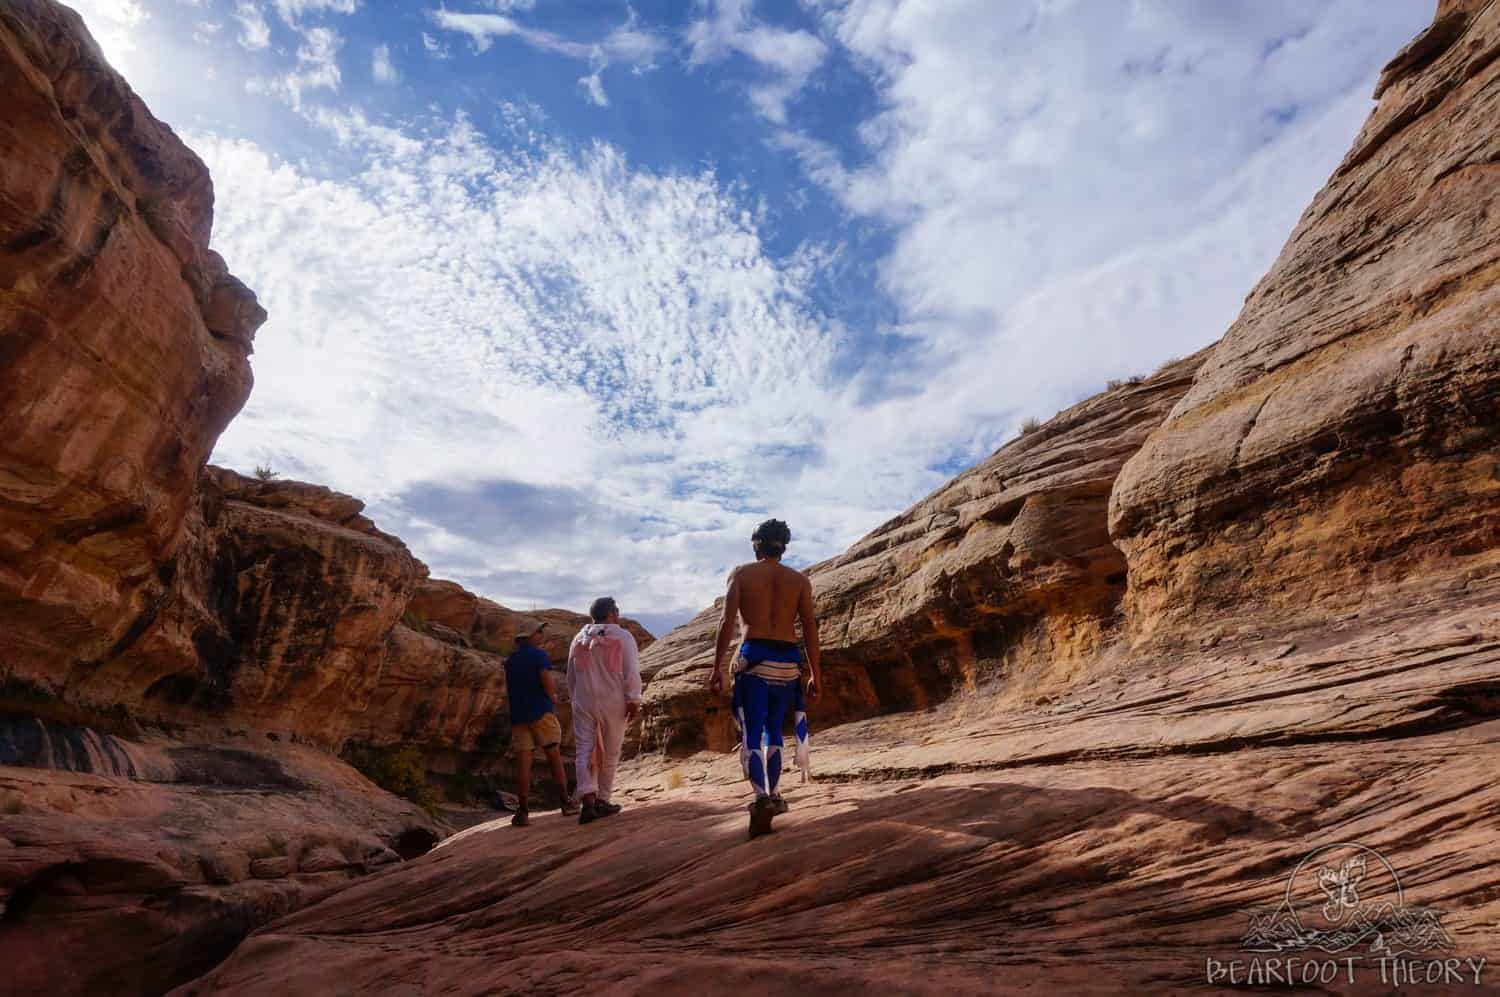 Holman slot canyon on the White Rim Trail - exploring in costume on Halloween